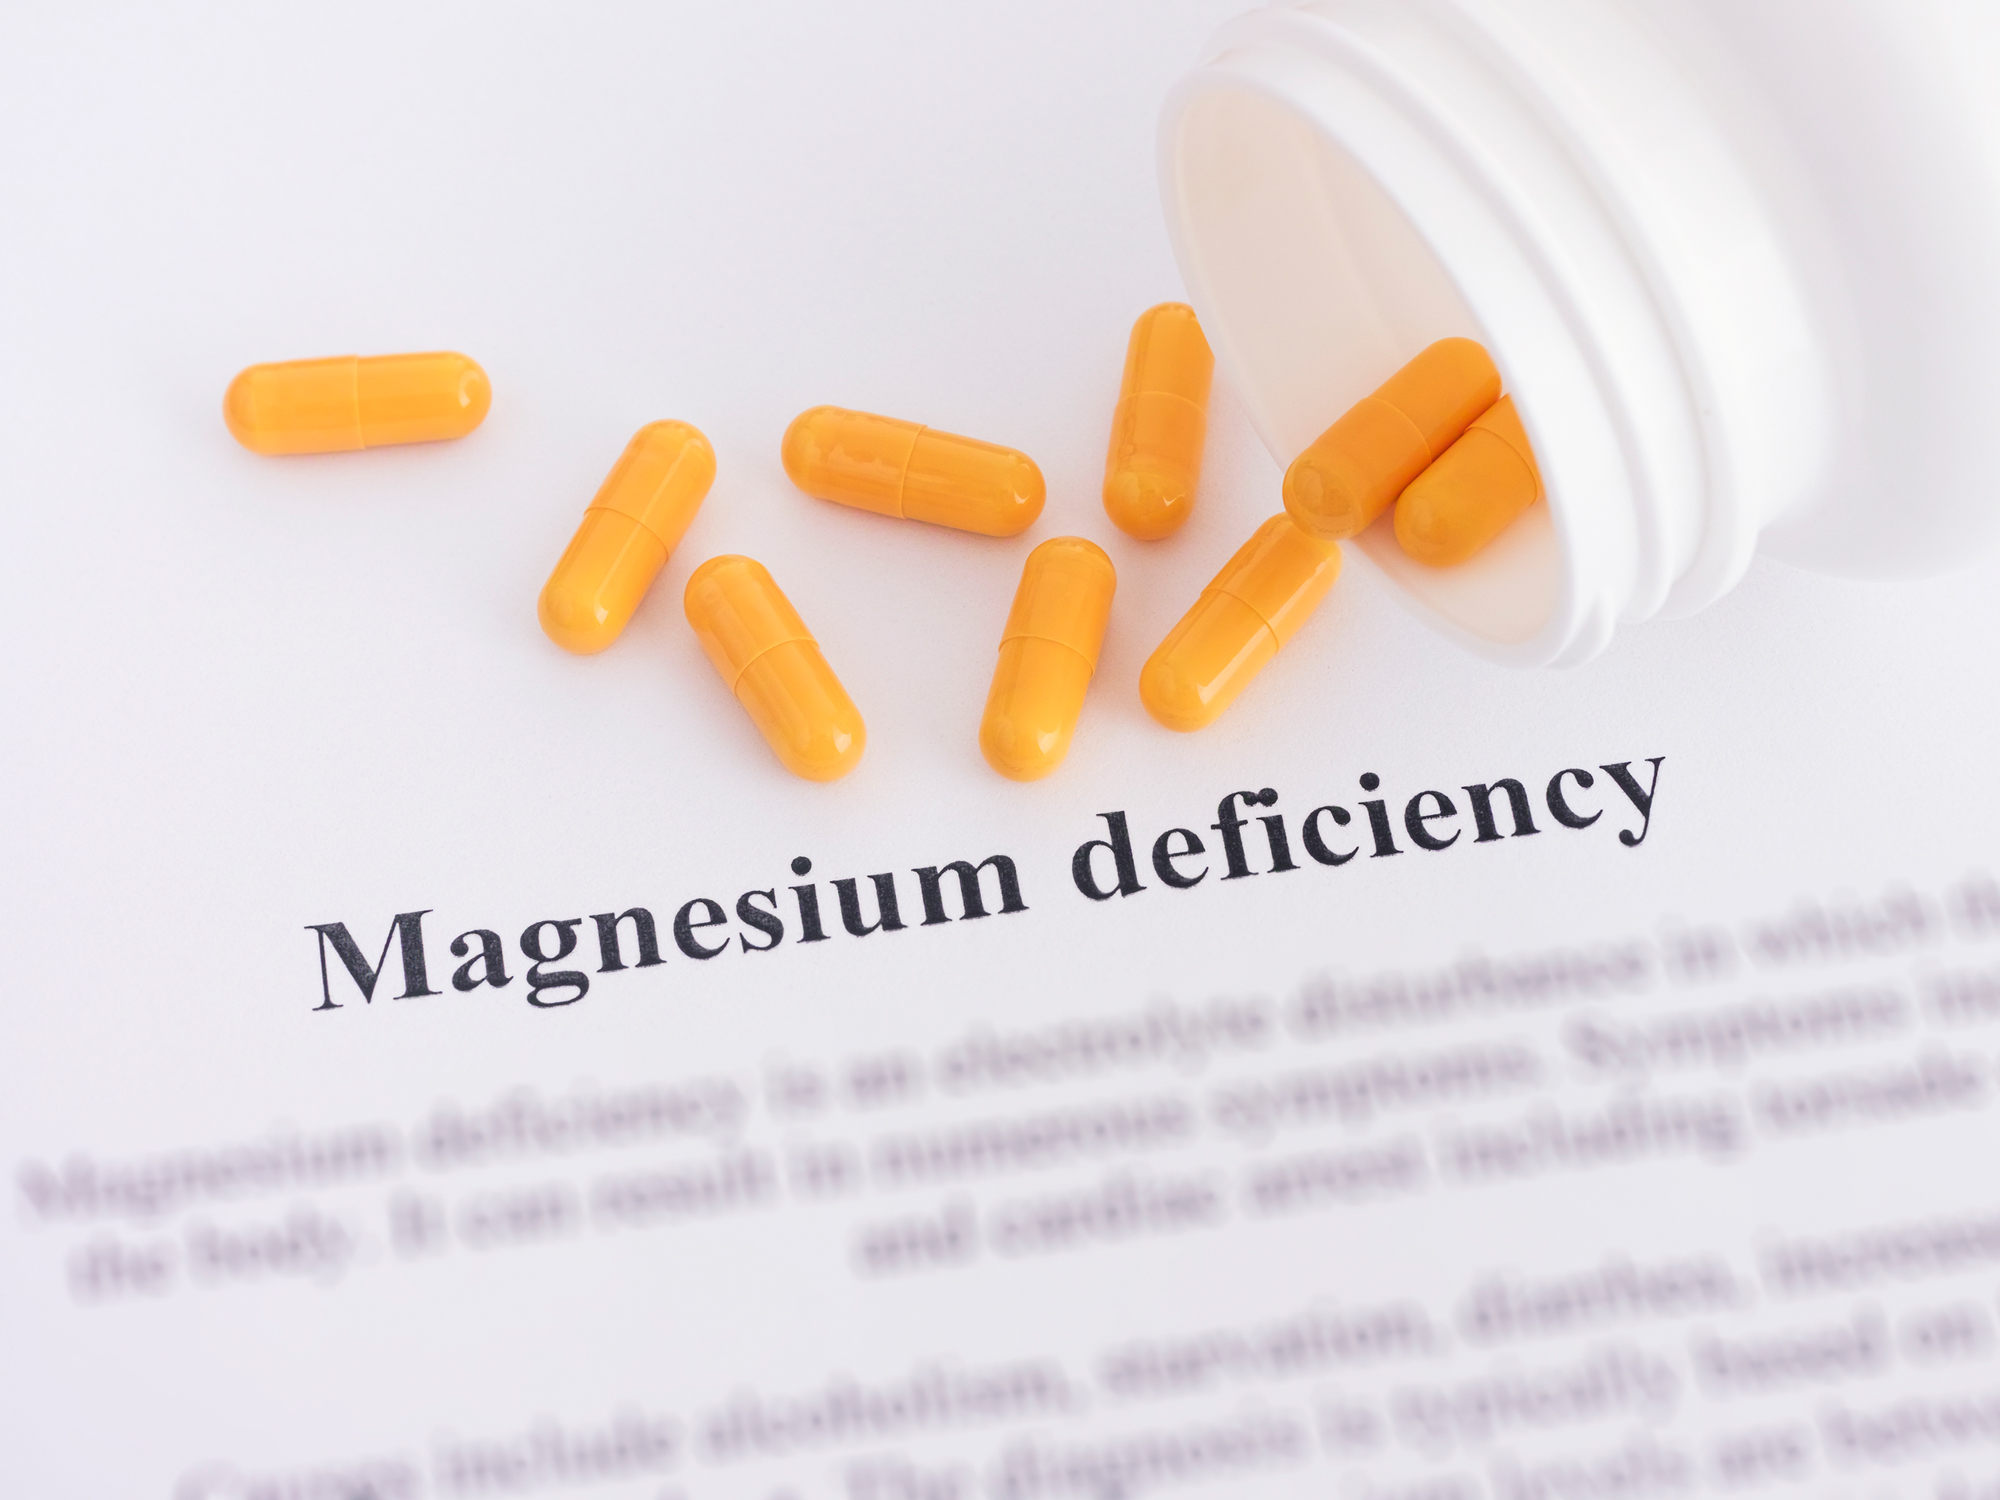 Magnesium deficiency: Symptoms, causes and cures for the silent crisis